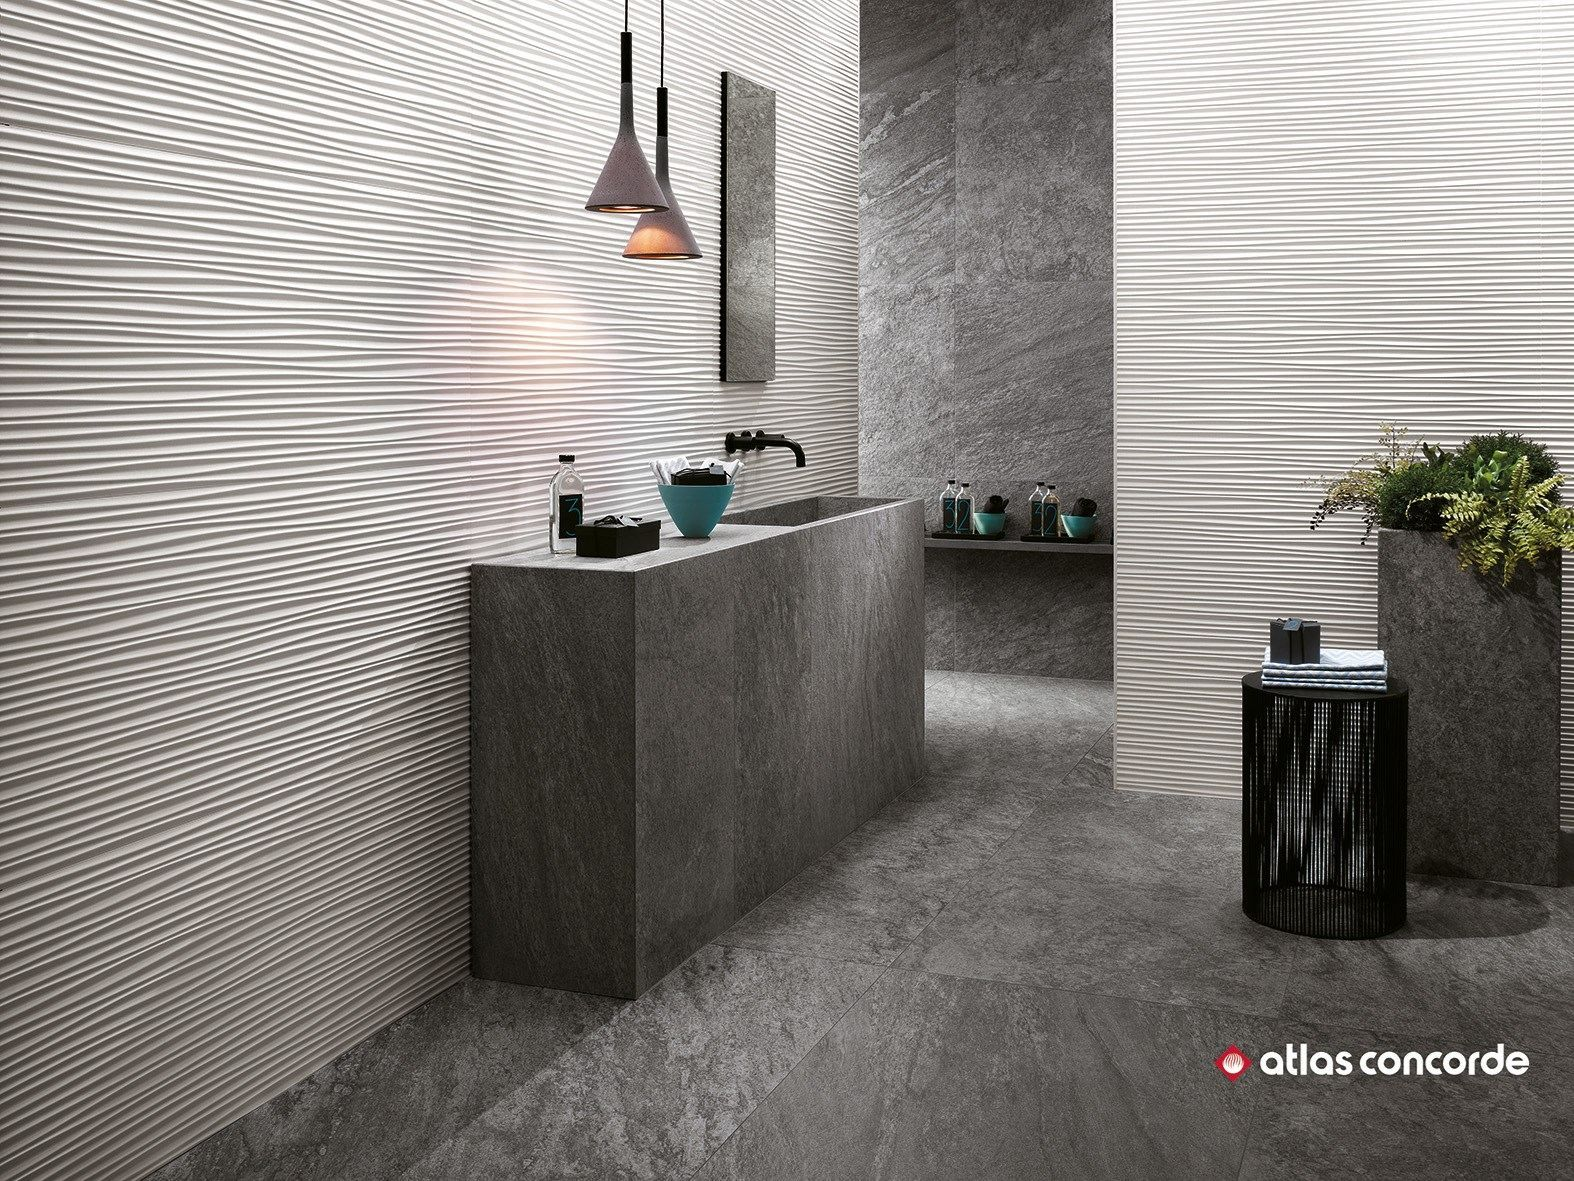 Download The Catalogue And Request Prices Of 3d Wall Design Flows By Atlas Concorde White Paste Wall Cladding Interior Wall Cladding Bathroom Interior Design